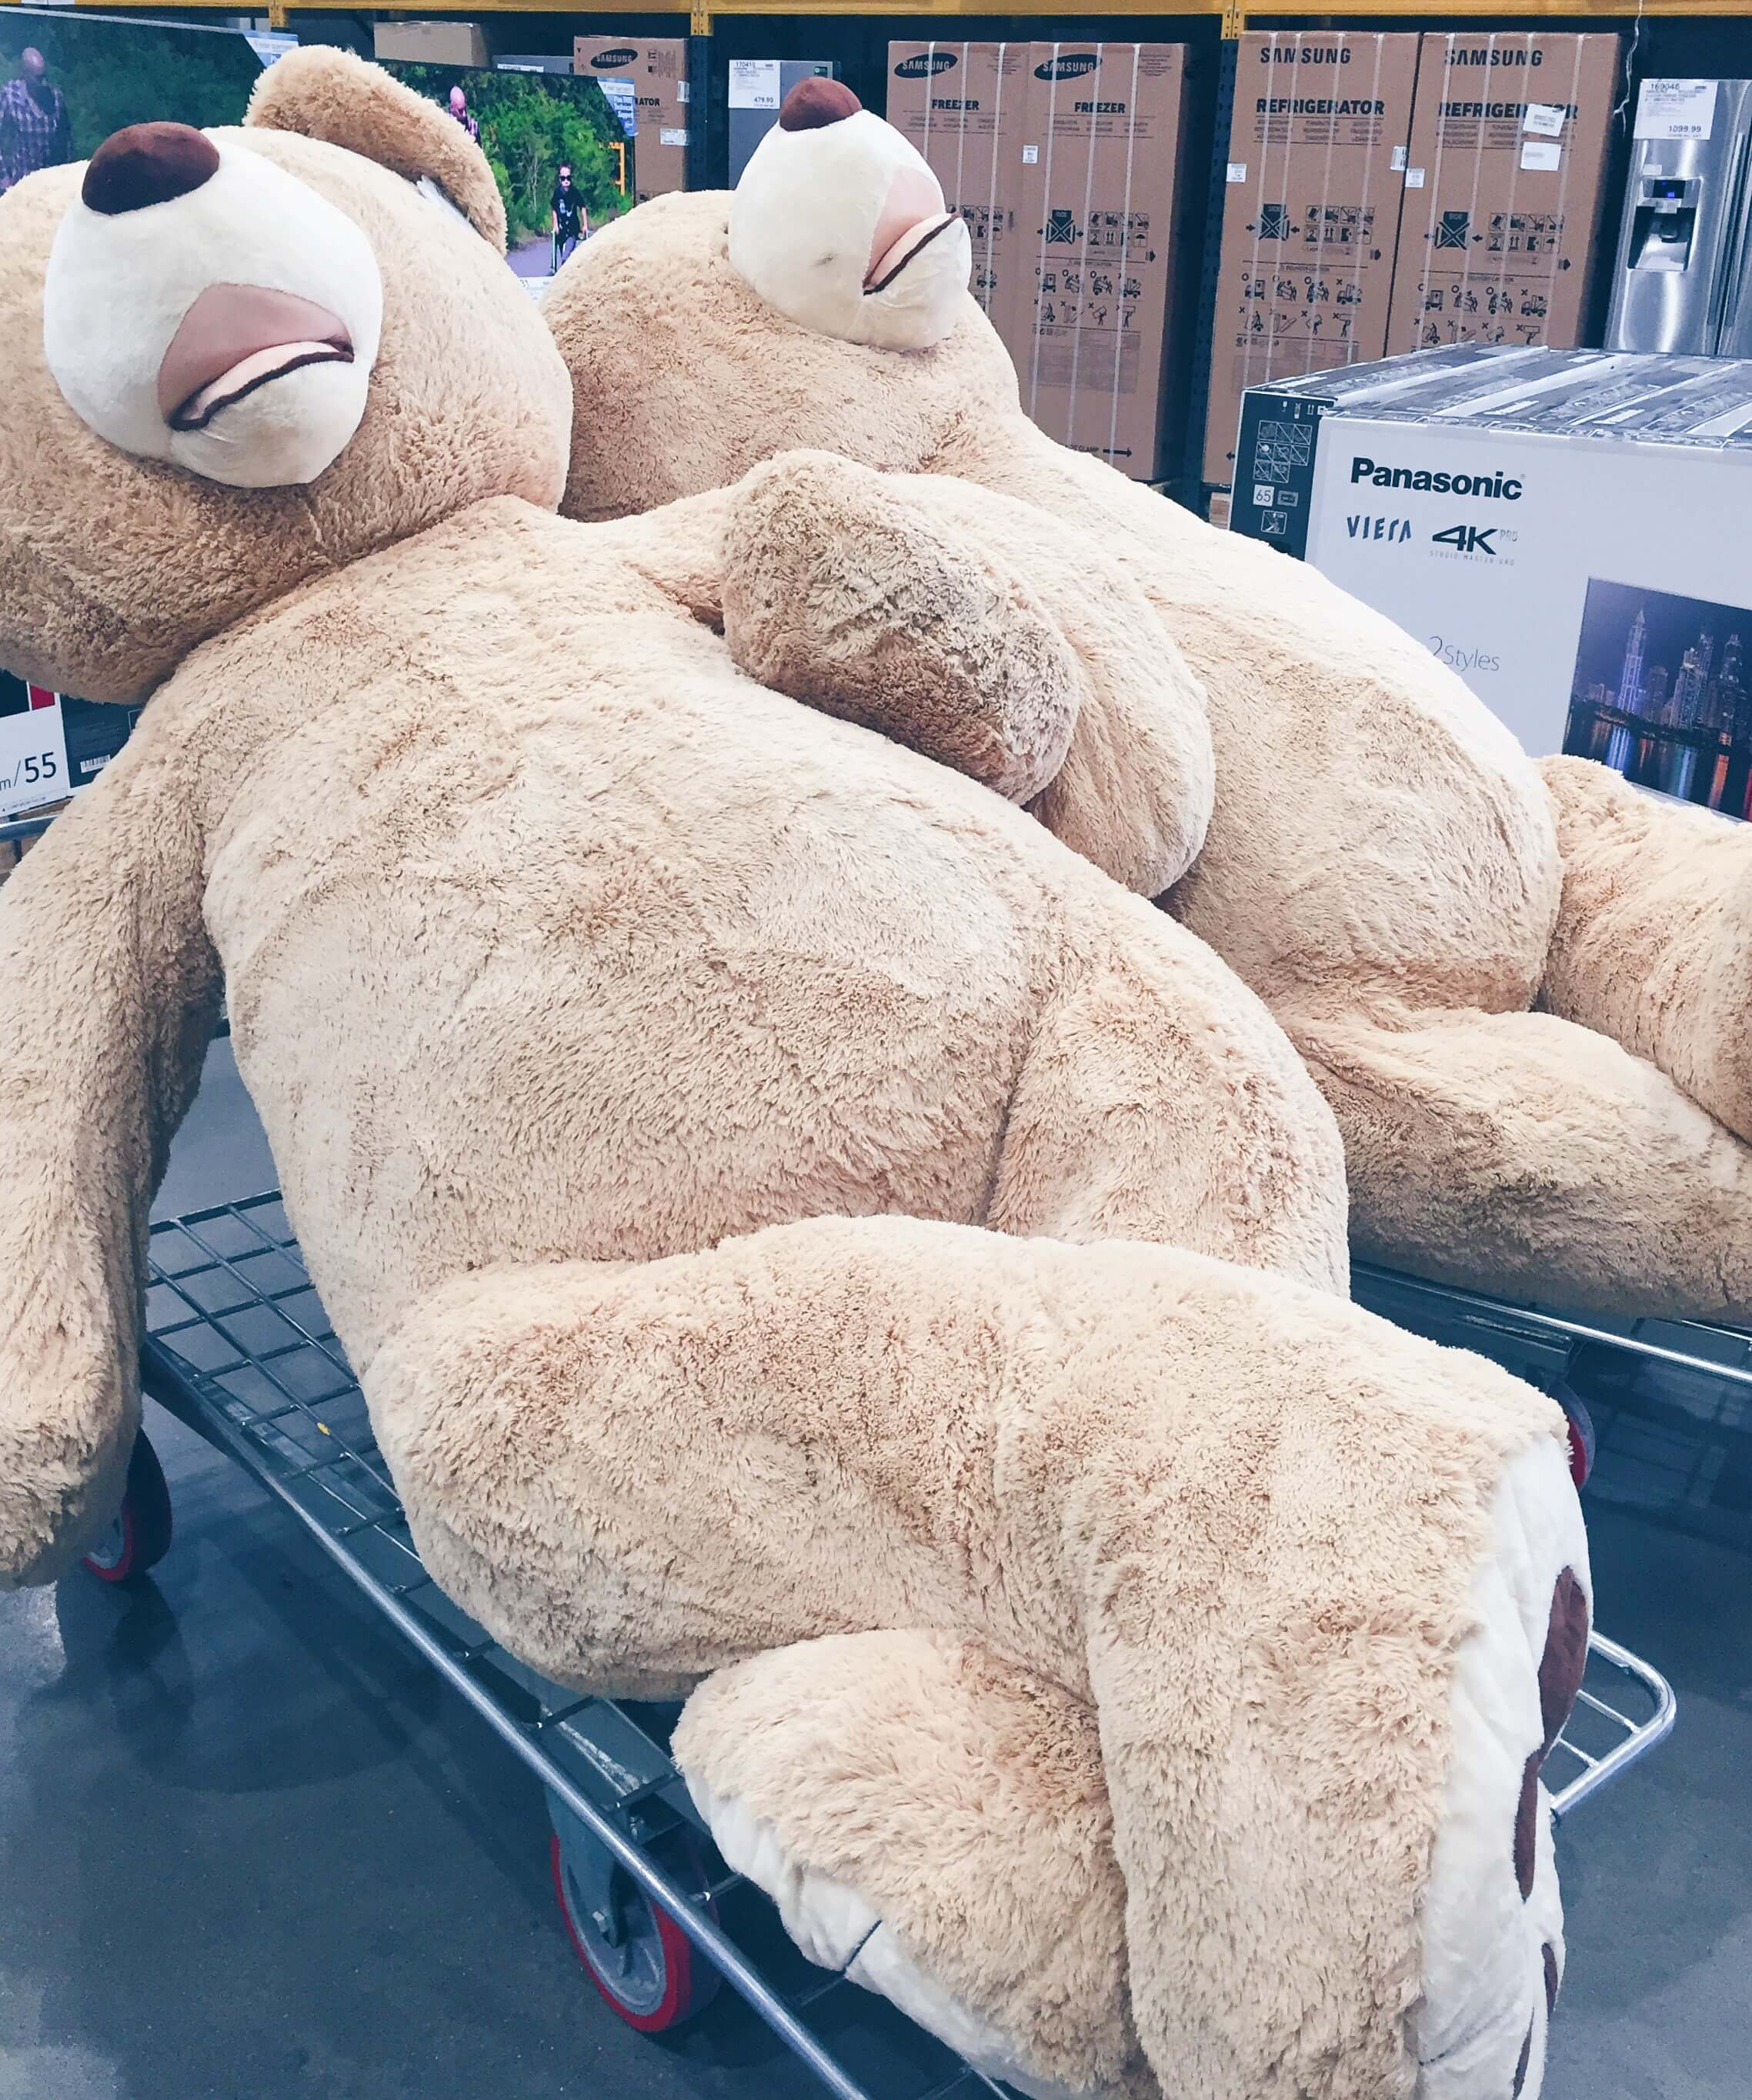 The largest teddy bear's I've ever seen in Costco's!